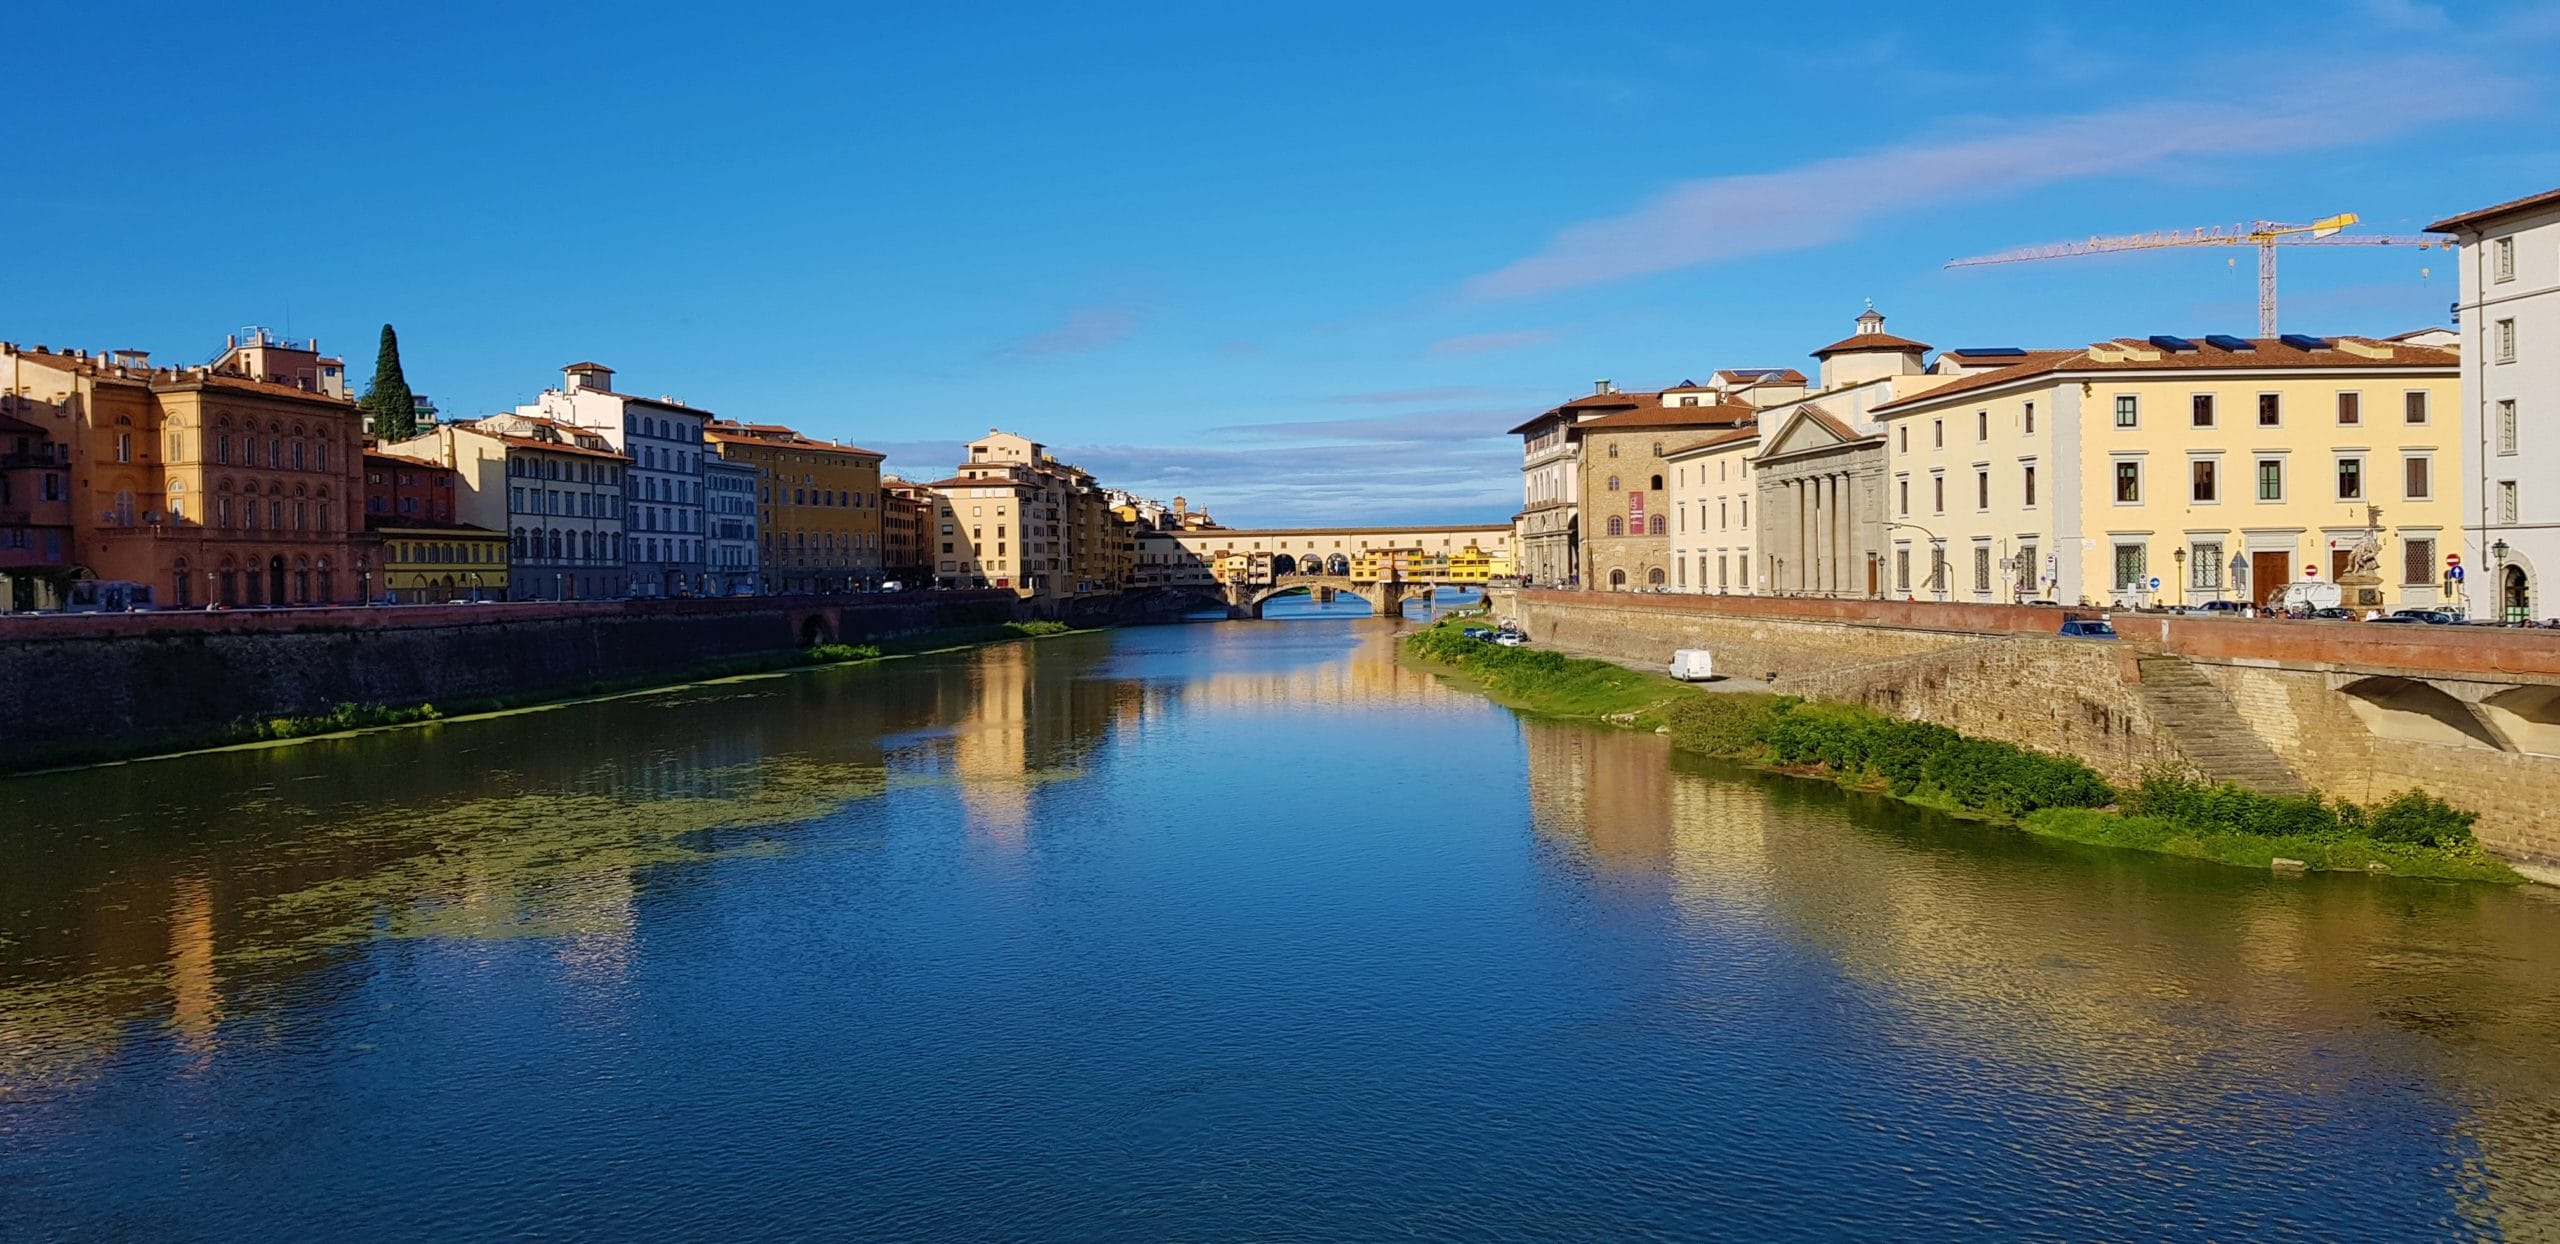 How many days to spend in Florence? 2 beautiful days 9